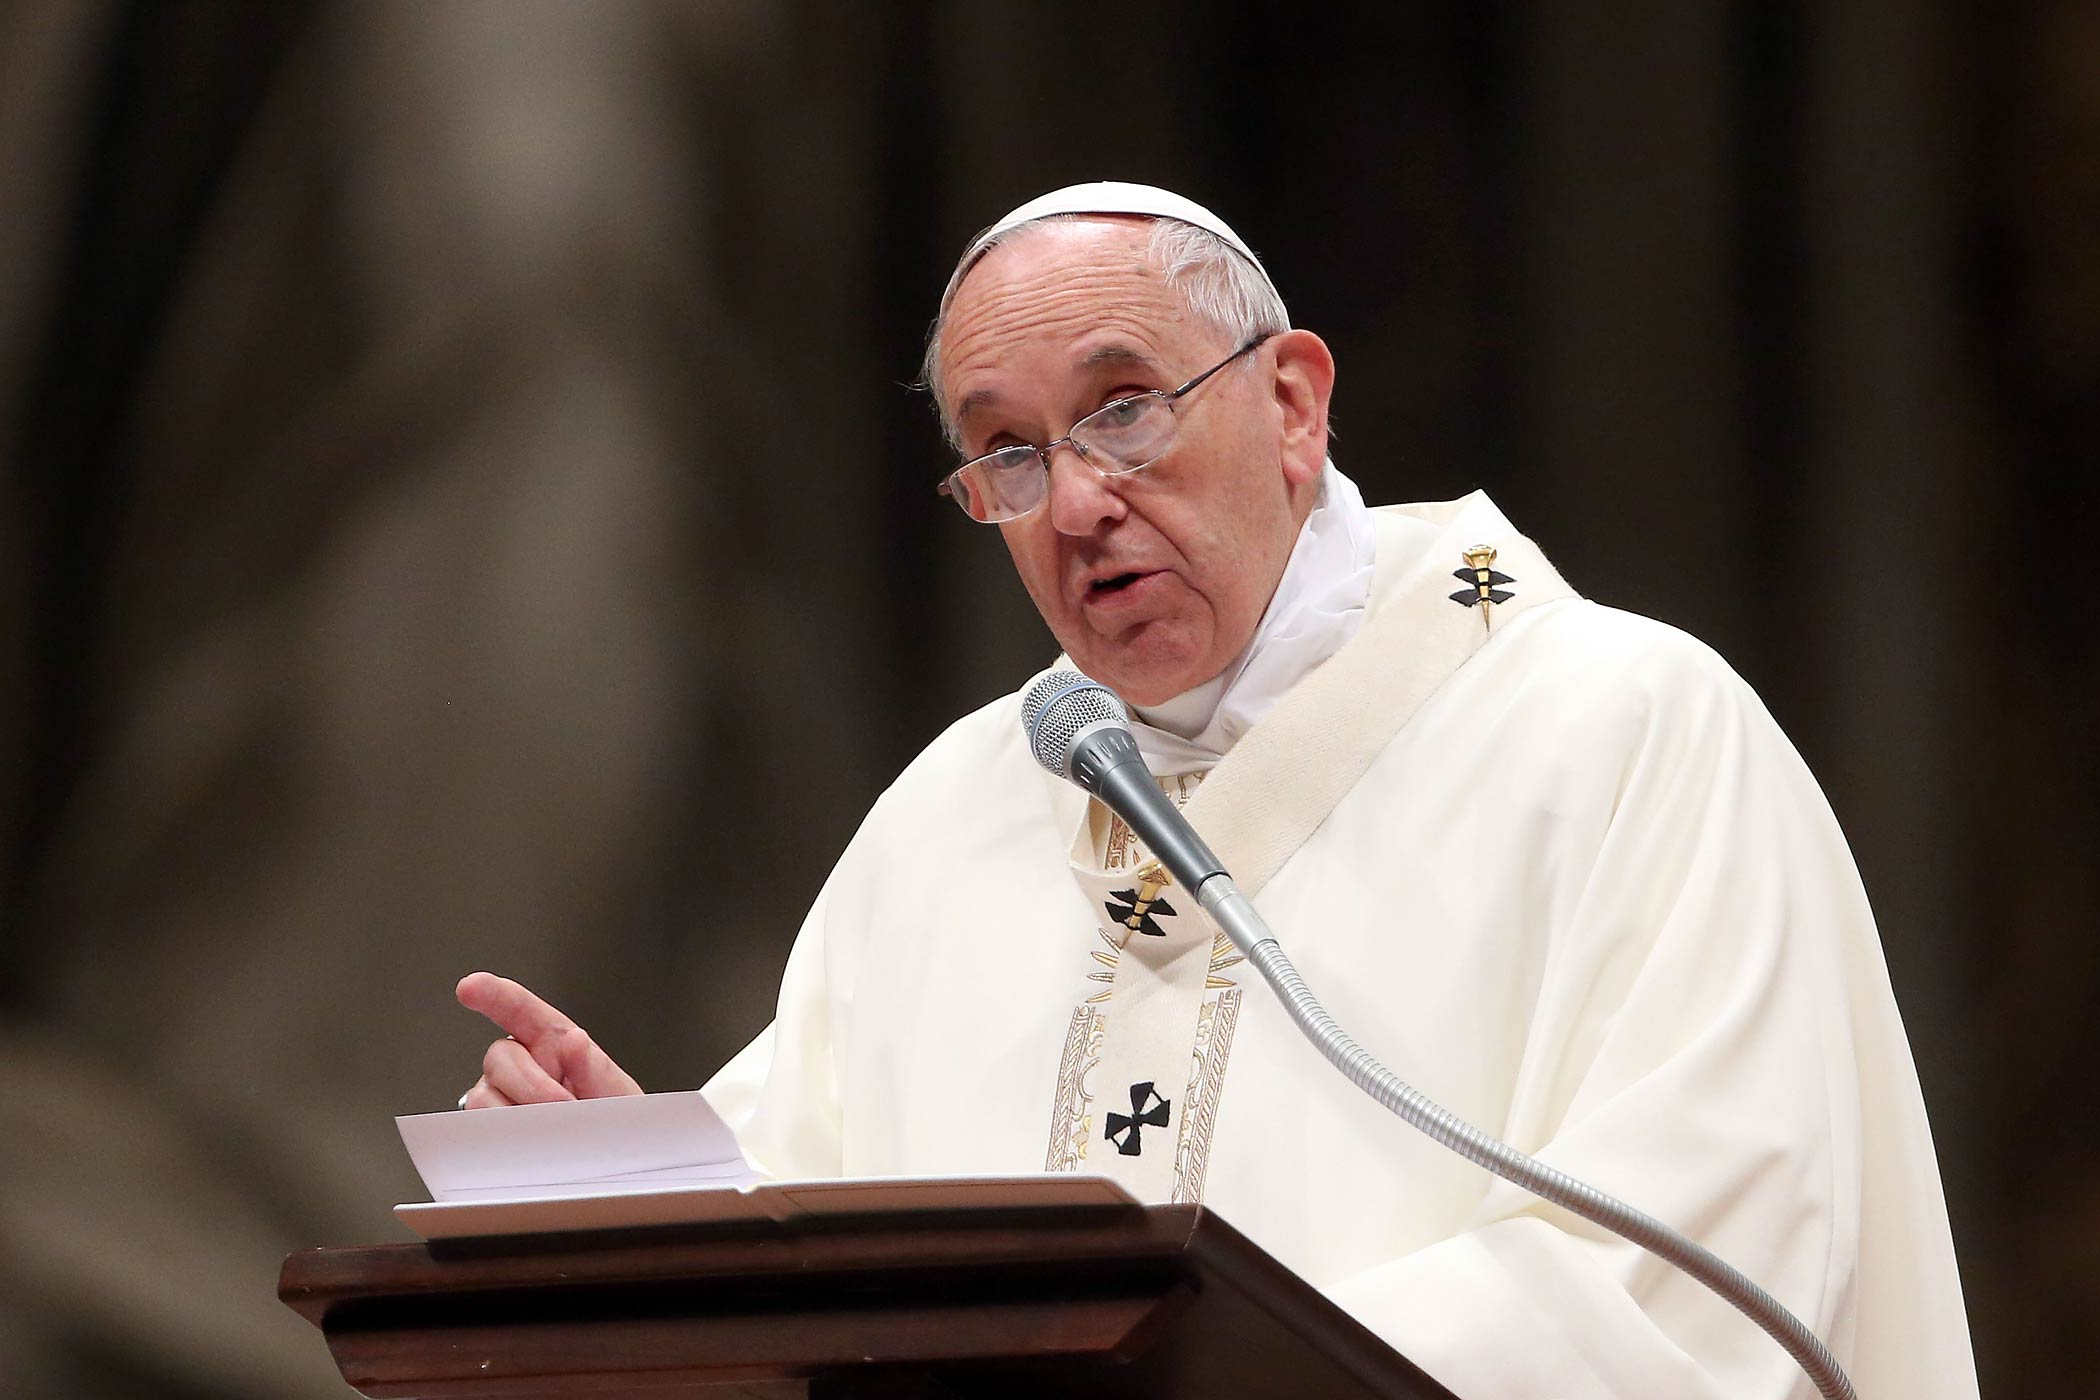 Pope Francis speaks during a Mass at St. Peter's Basilica on Feb. 2, 2015 in Vatican City.